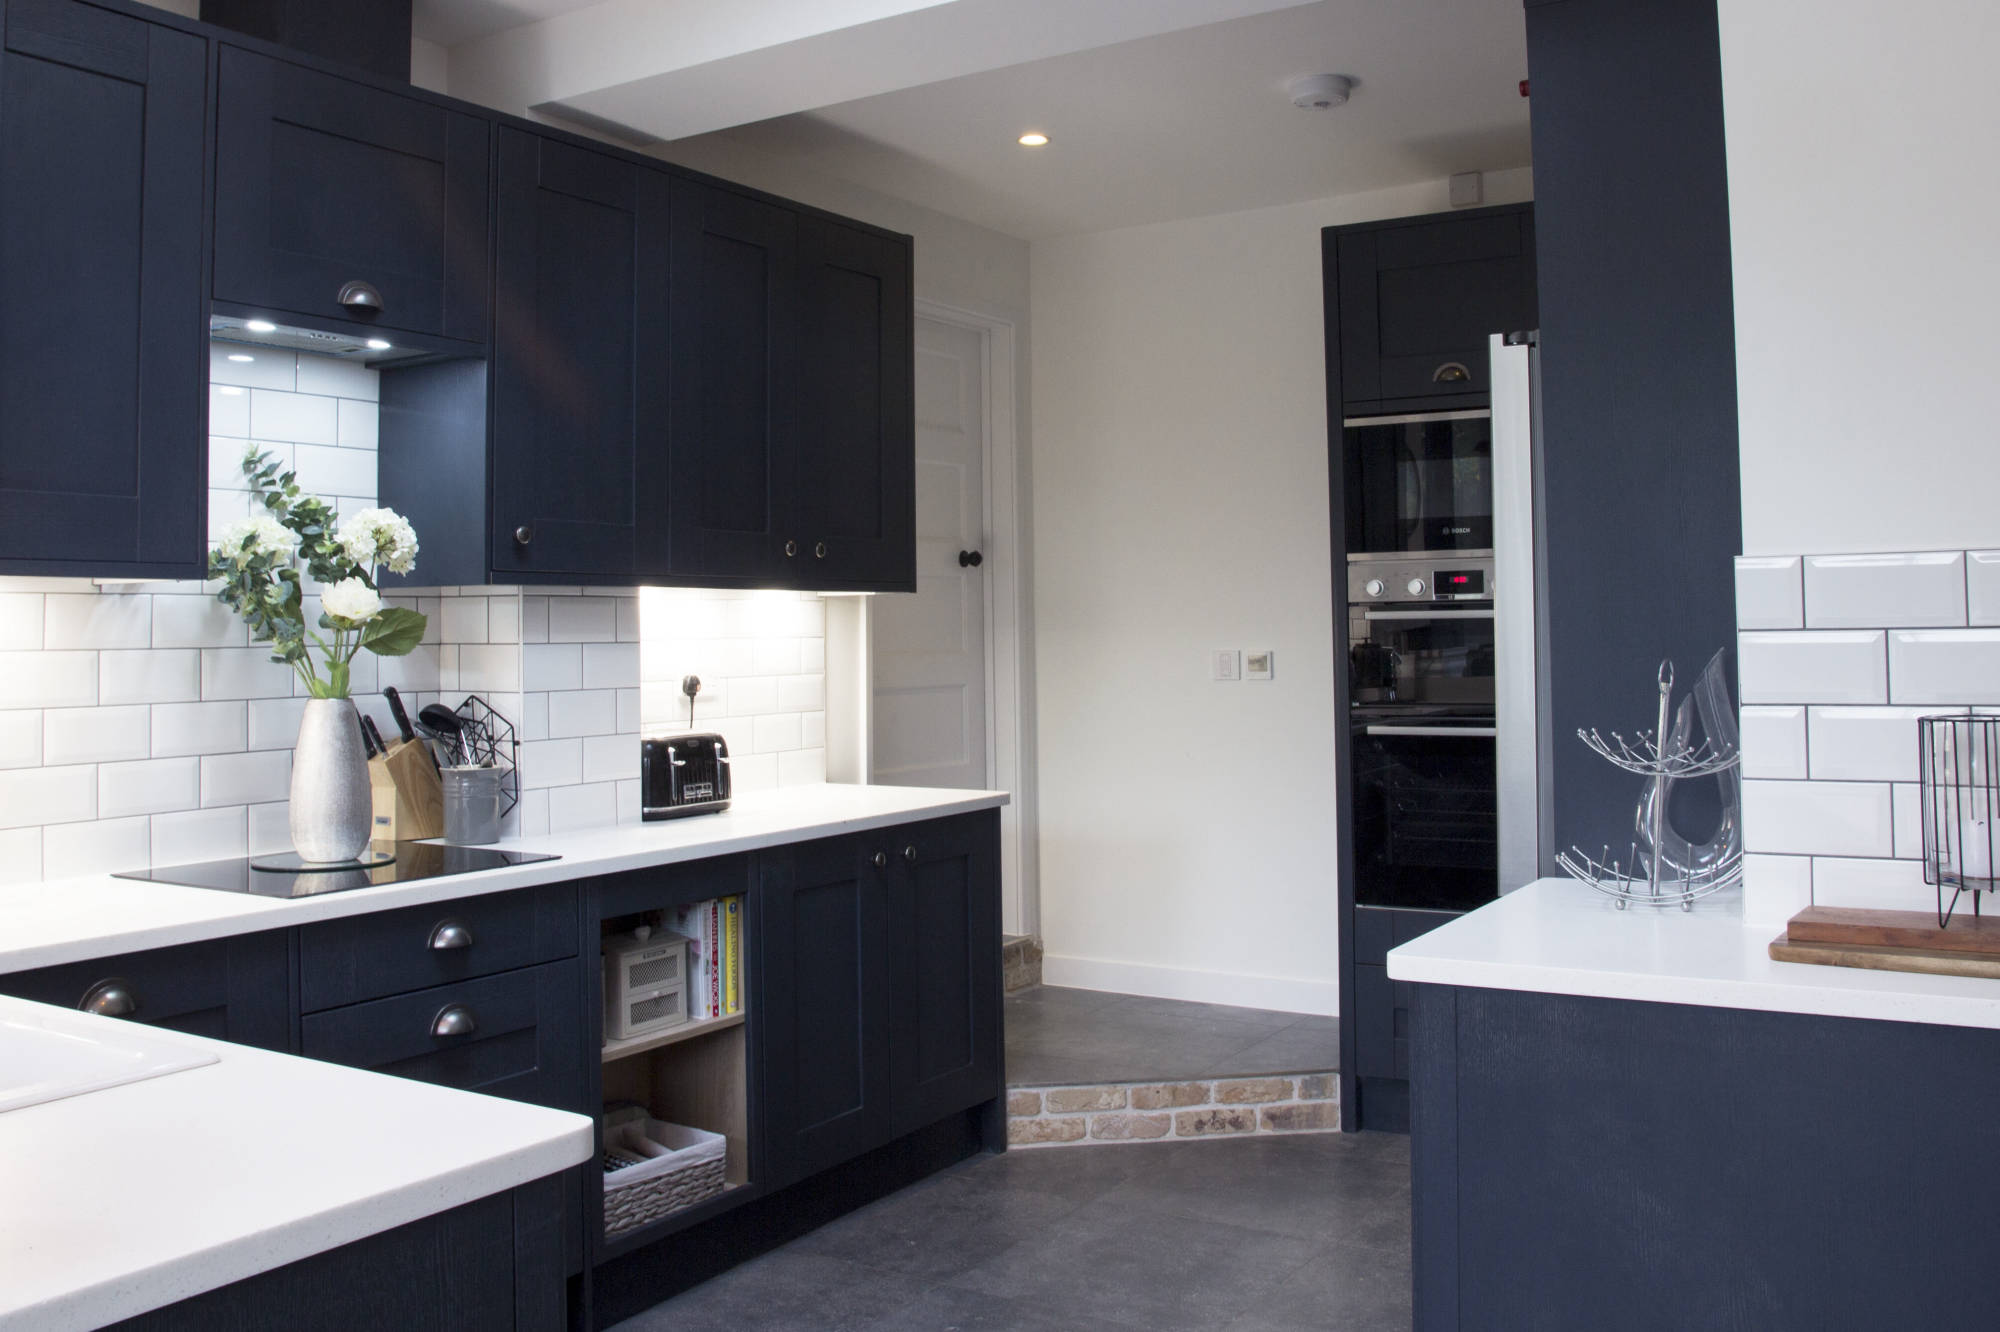 Shaker style kitchen in Welwyn Garden City